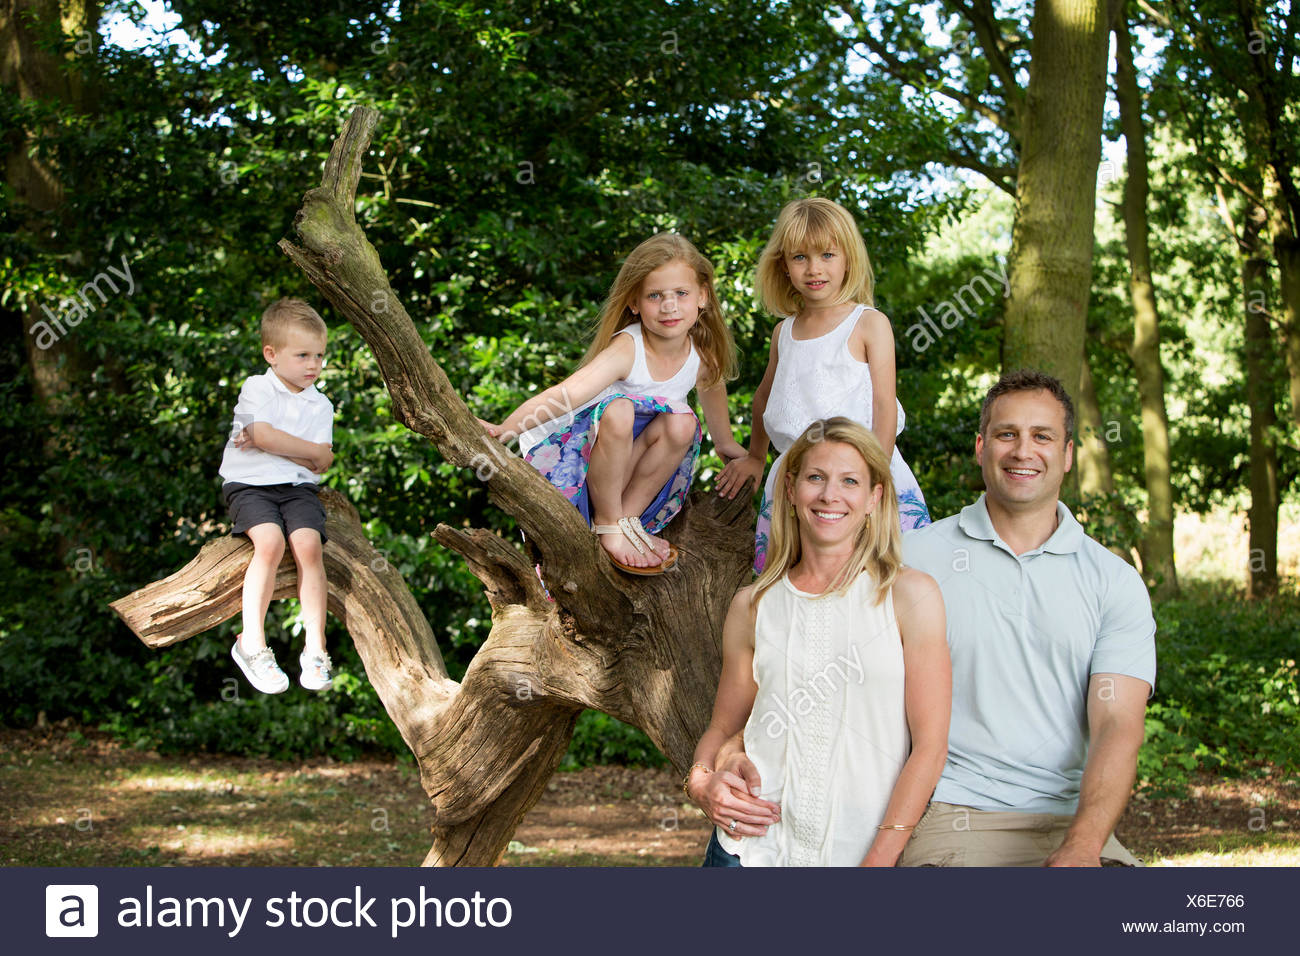 Family with three children by a tree in a forest, posing for a picture. - Stock Image